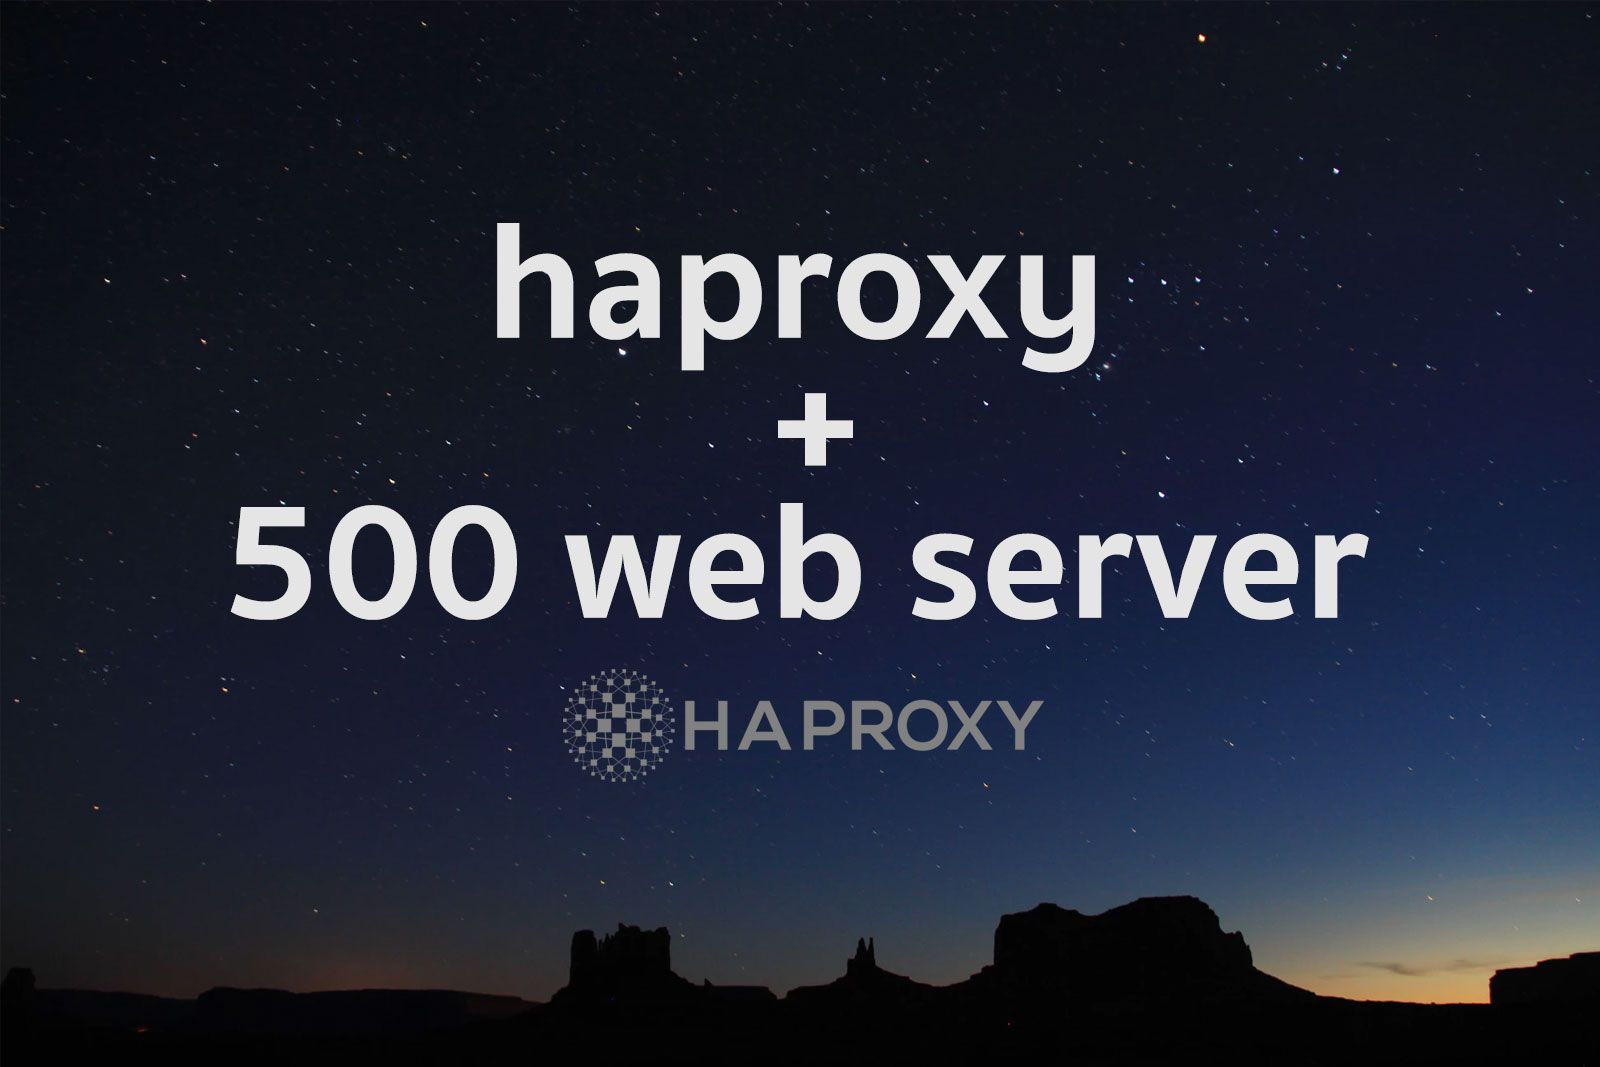 Haproxy  with 500 web server